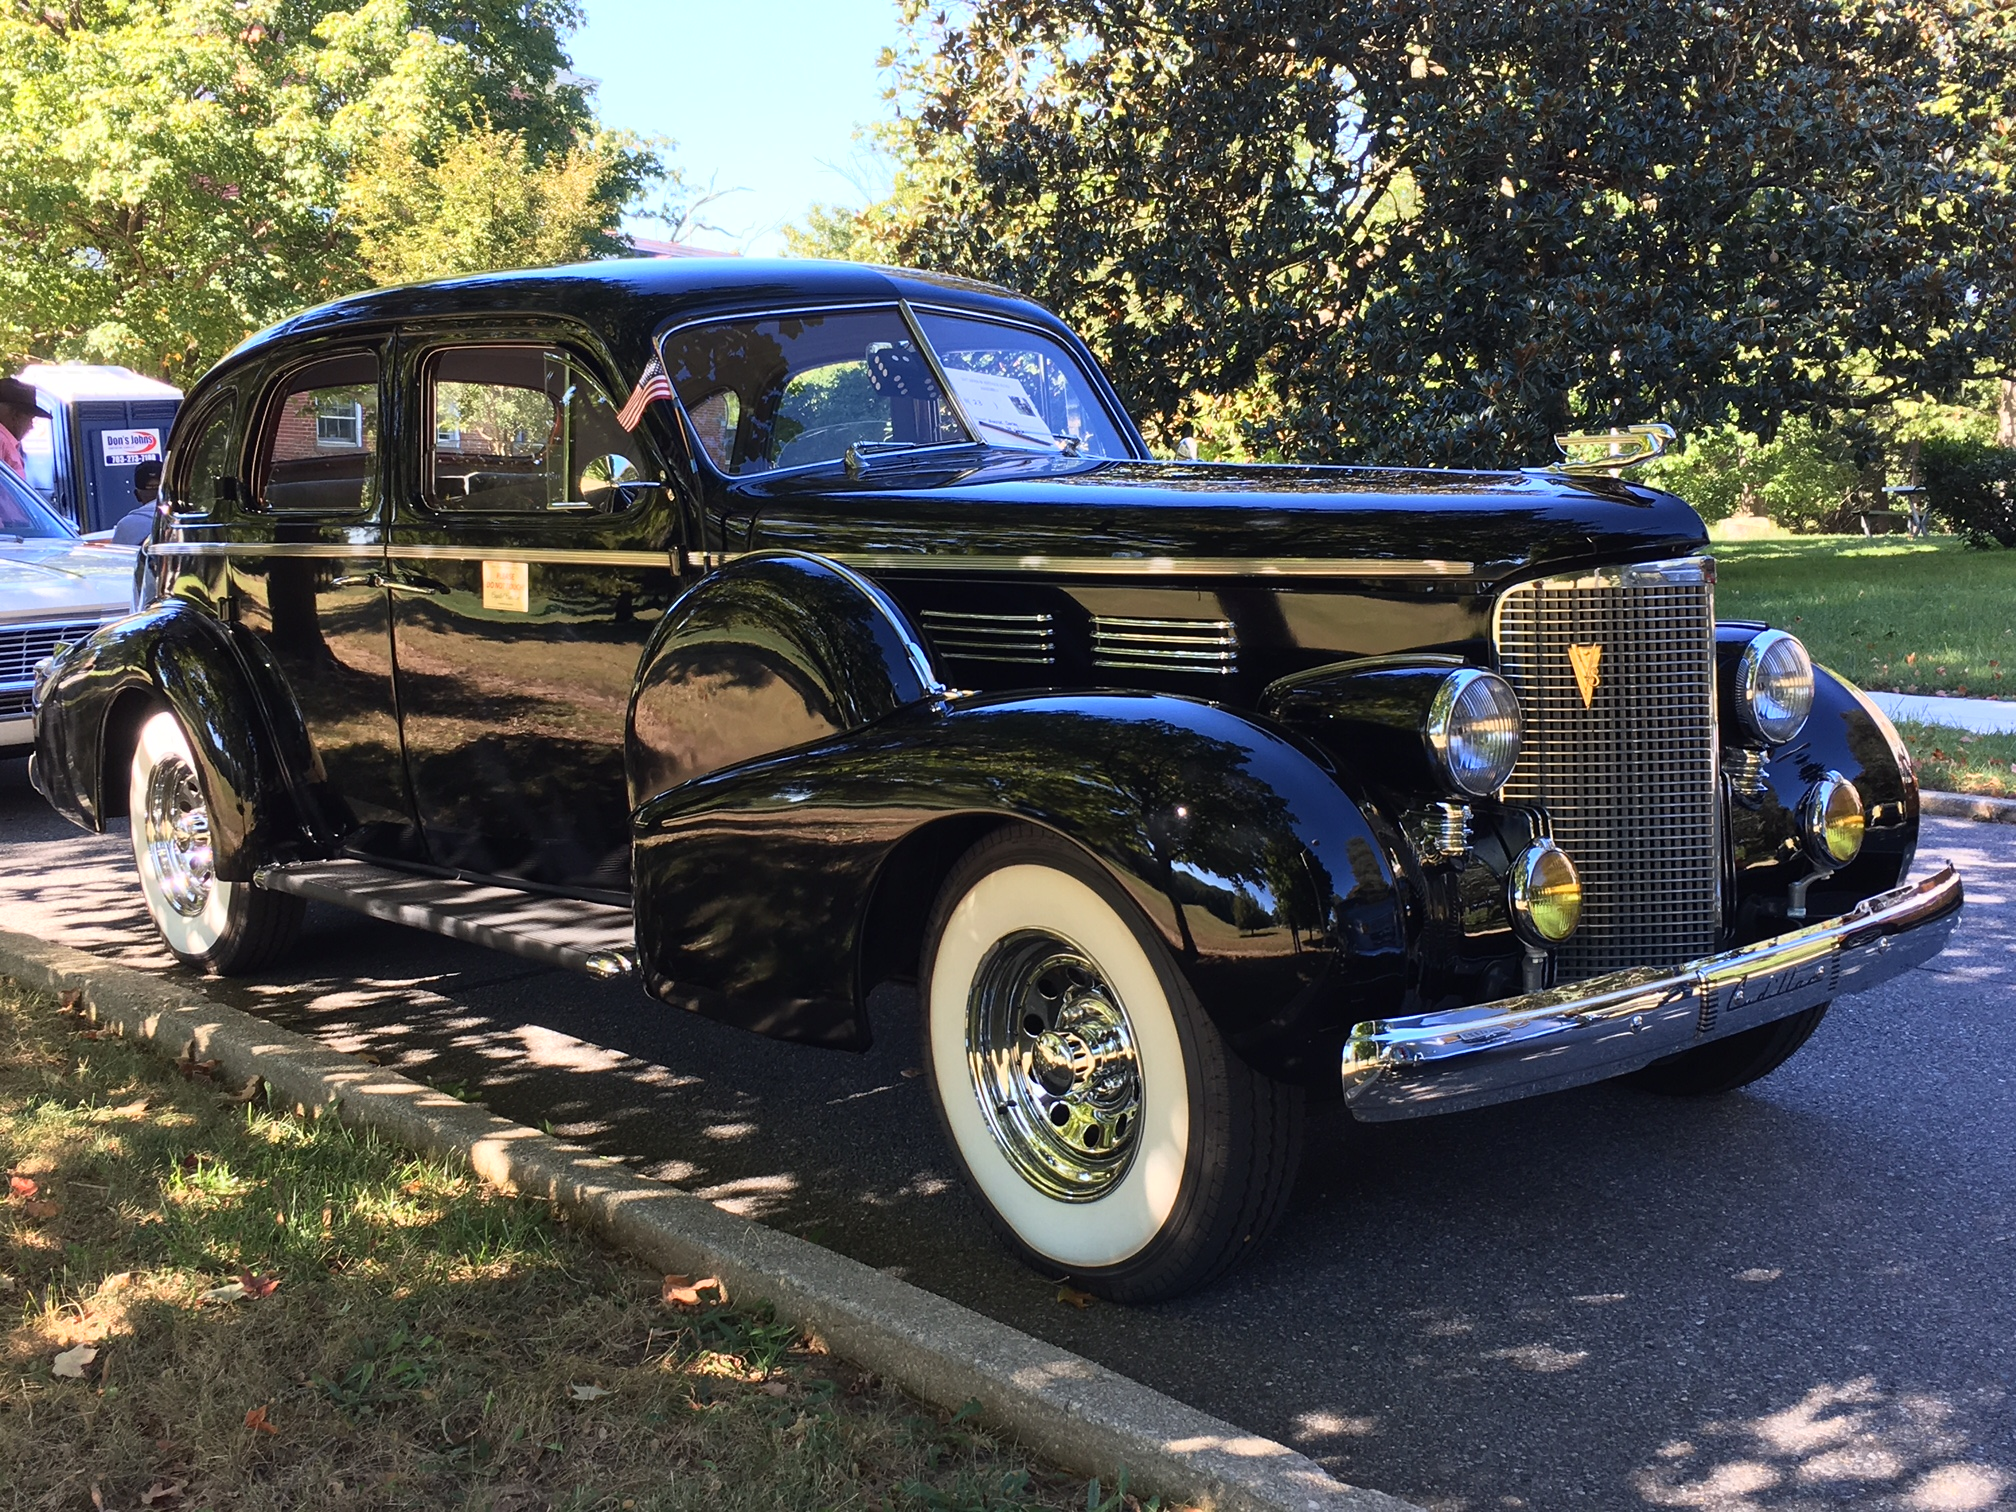 Vintage Autos at the Soldiers\' Home | Park View, D.C.